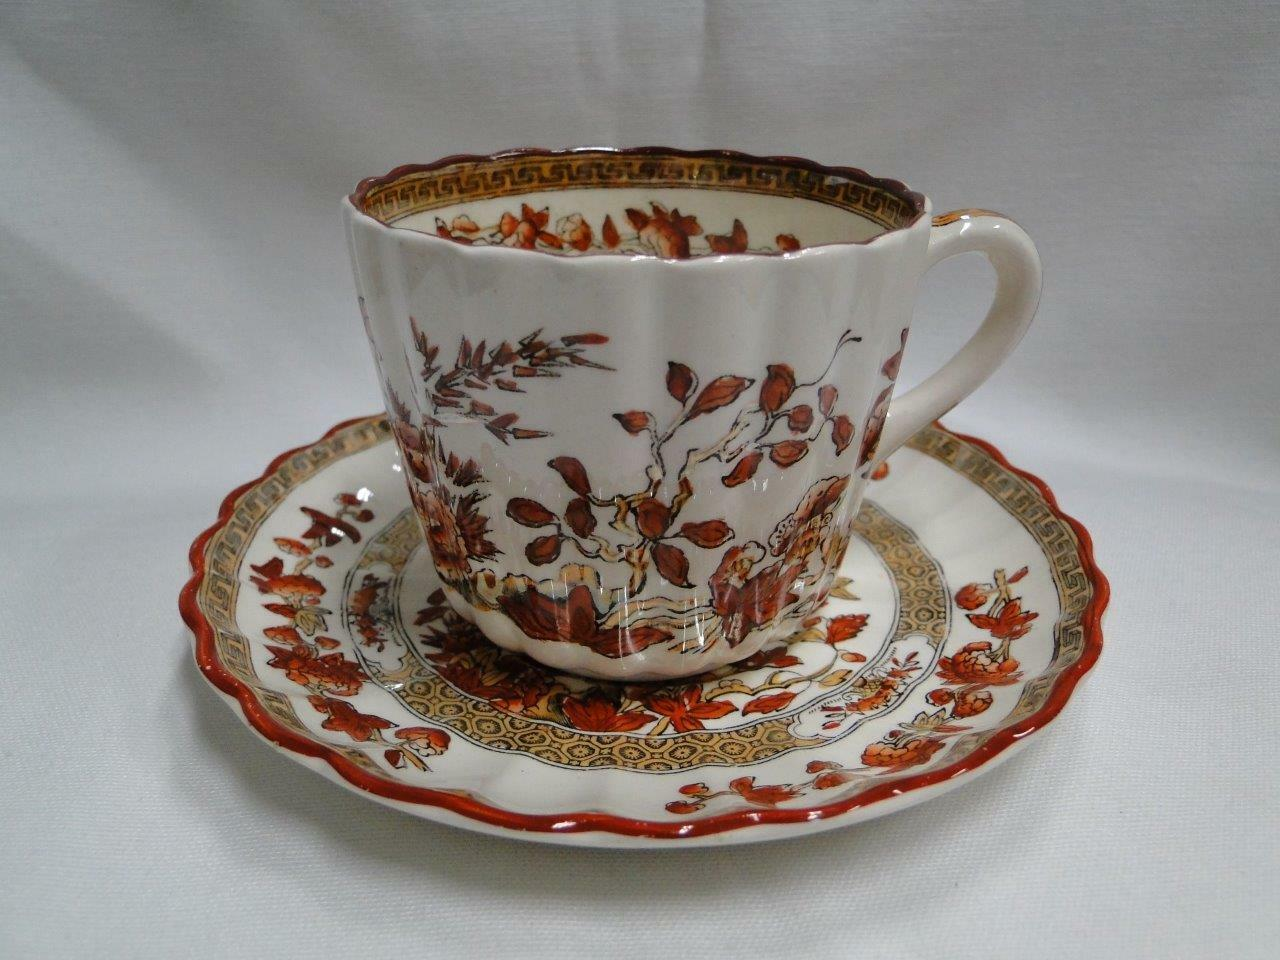 Spode India Tree Orange Rust, Floral, Red Trim: Cup & Saucer Set (s), 2.5/8""